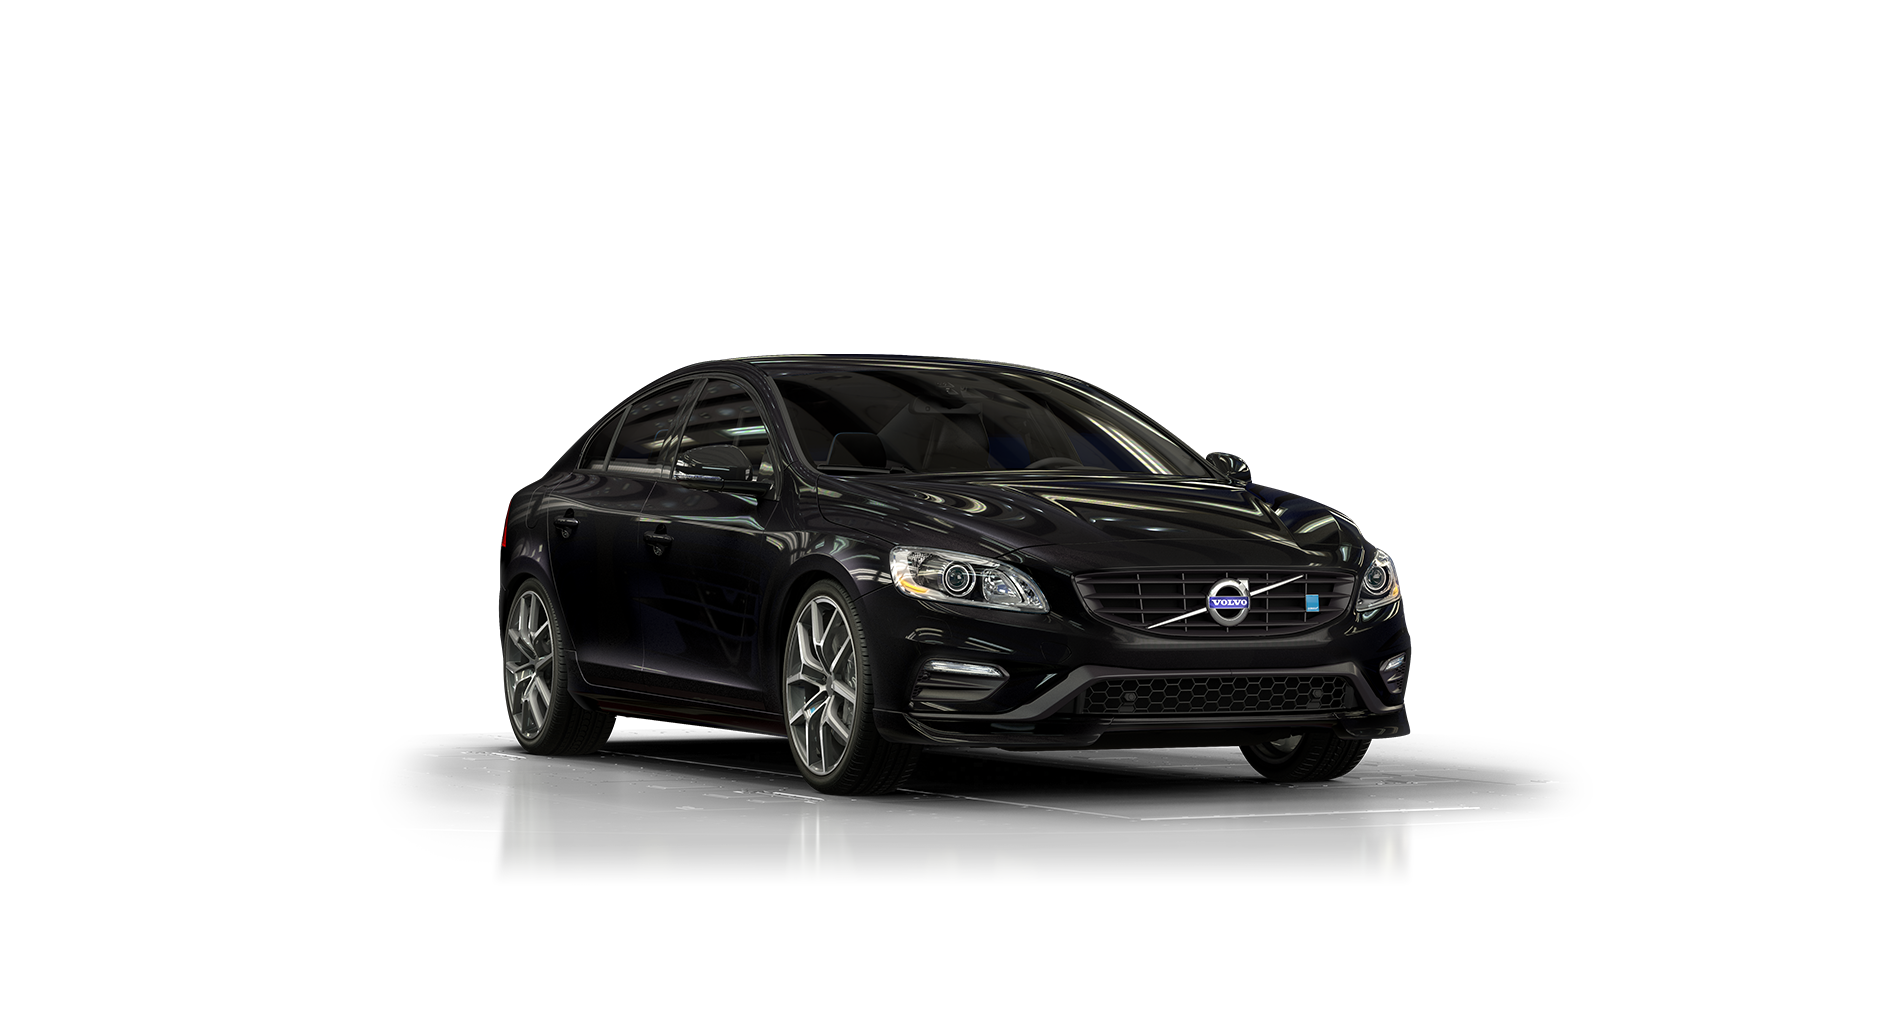 Volvo S60 Polestar In Black Rally And Hot Cars Pinterest Volvo